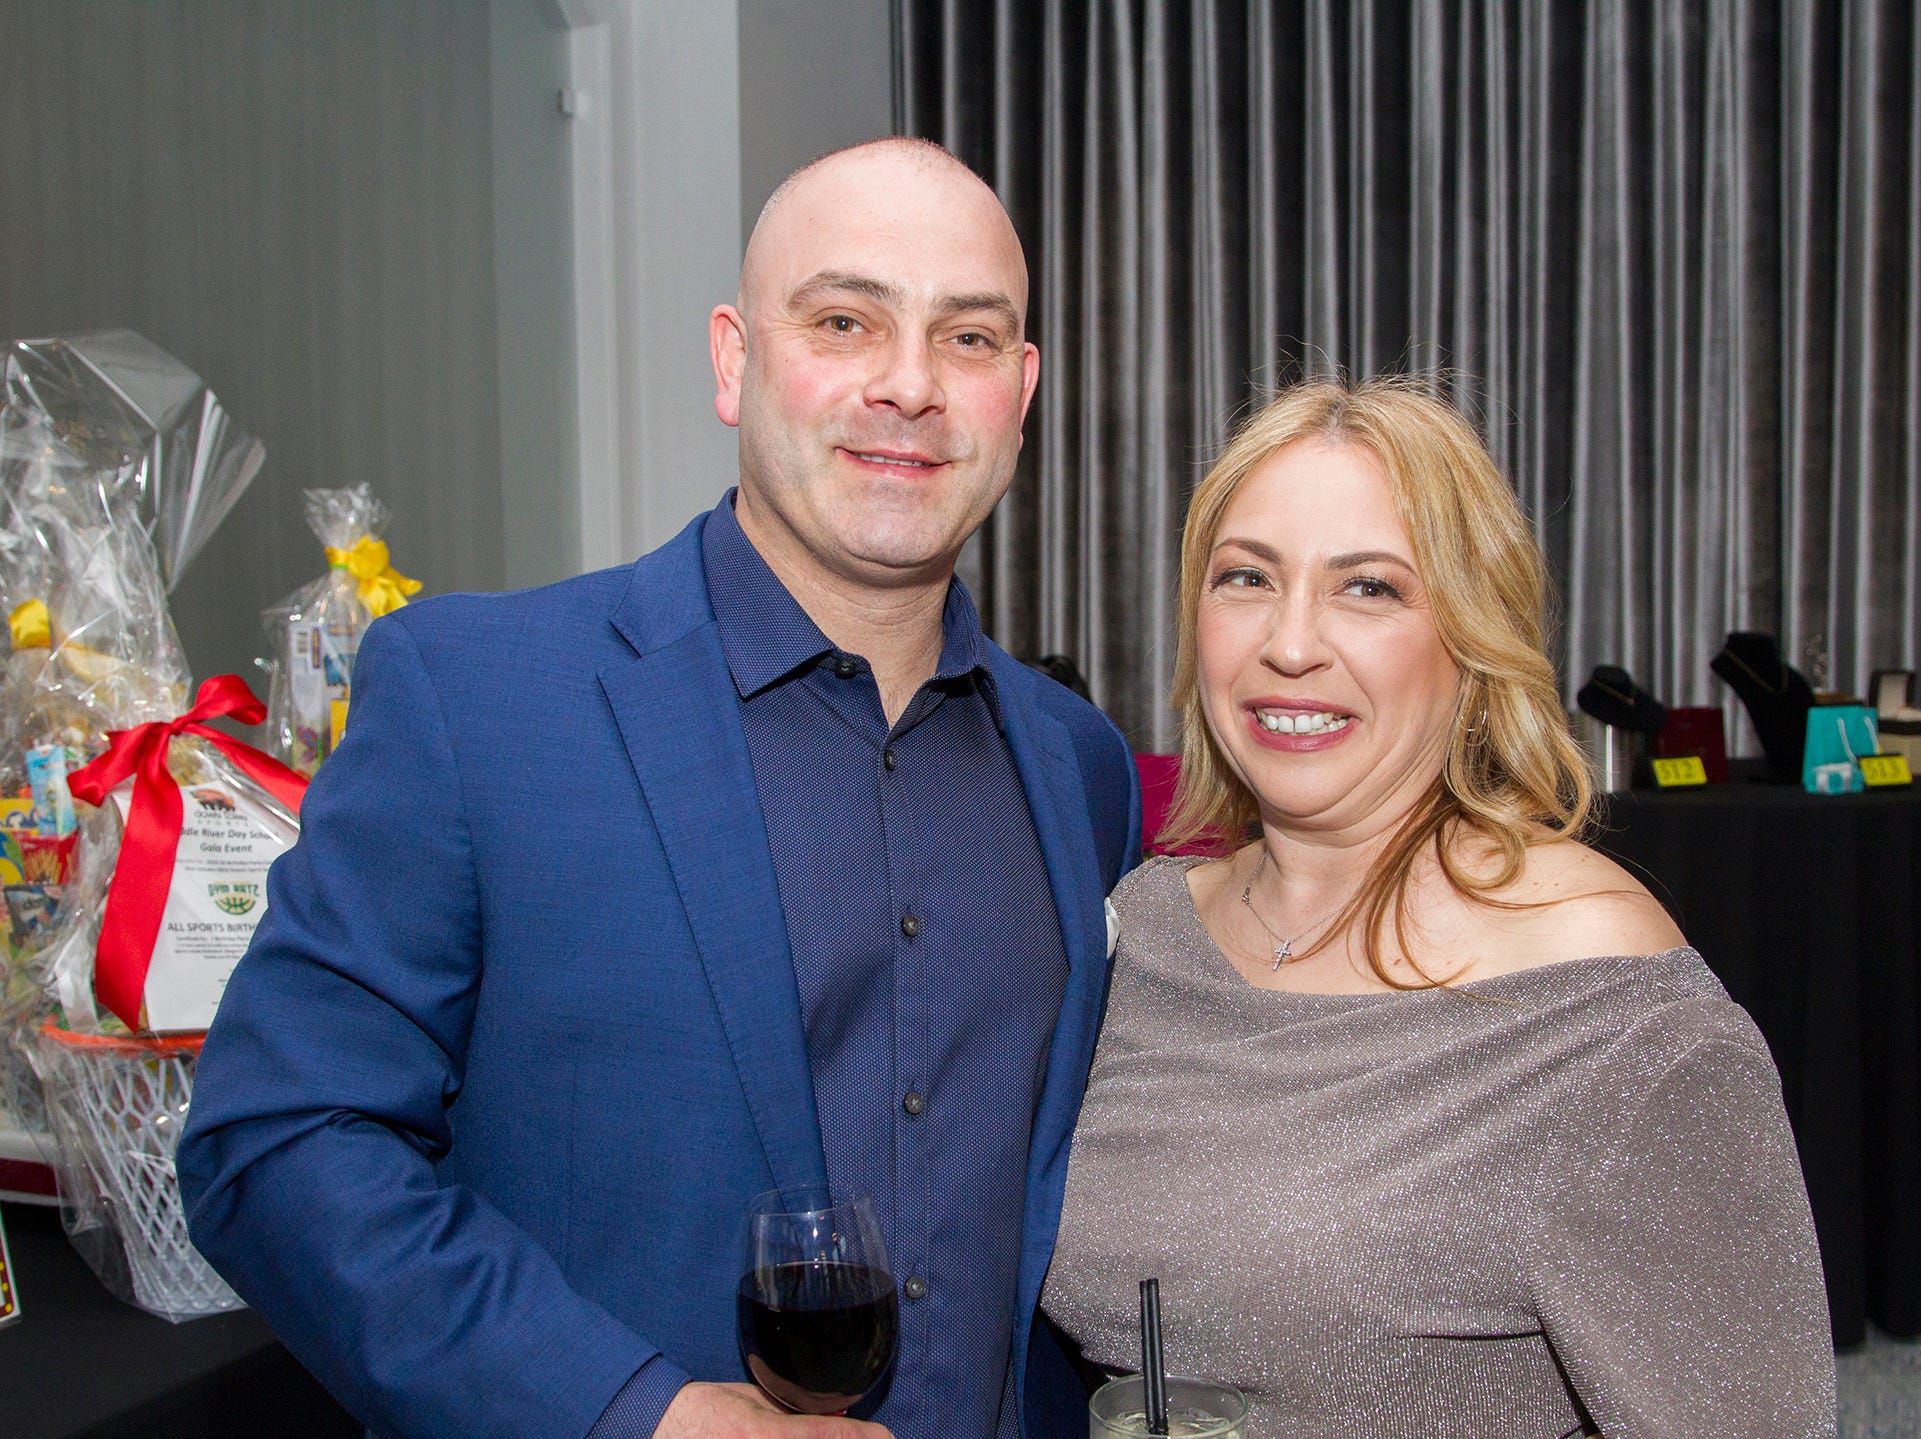 John and Anny Mansfield. Saddle River Day Annual Gala at Alpine Country Club 04/13/2019